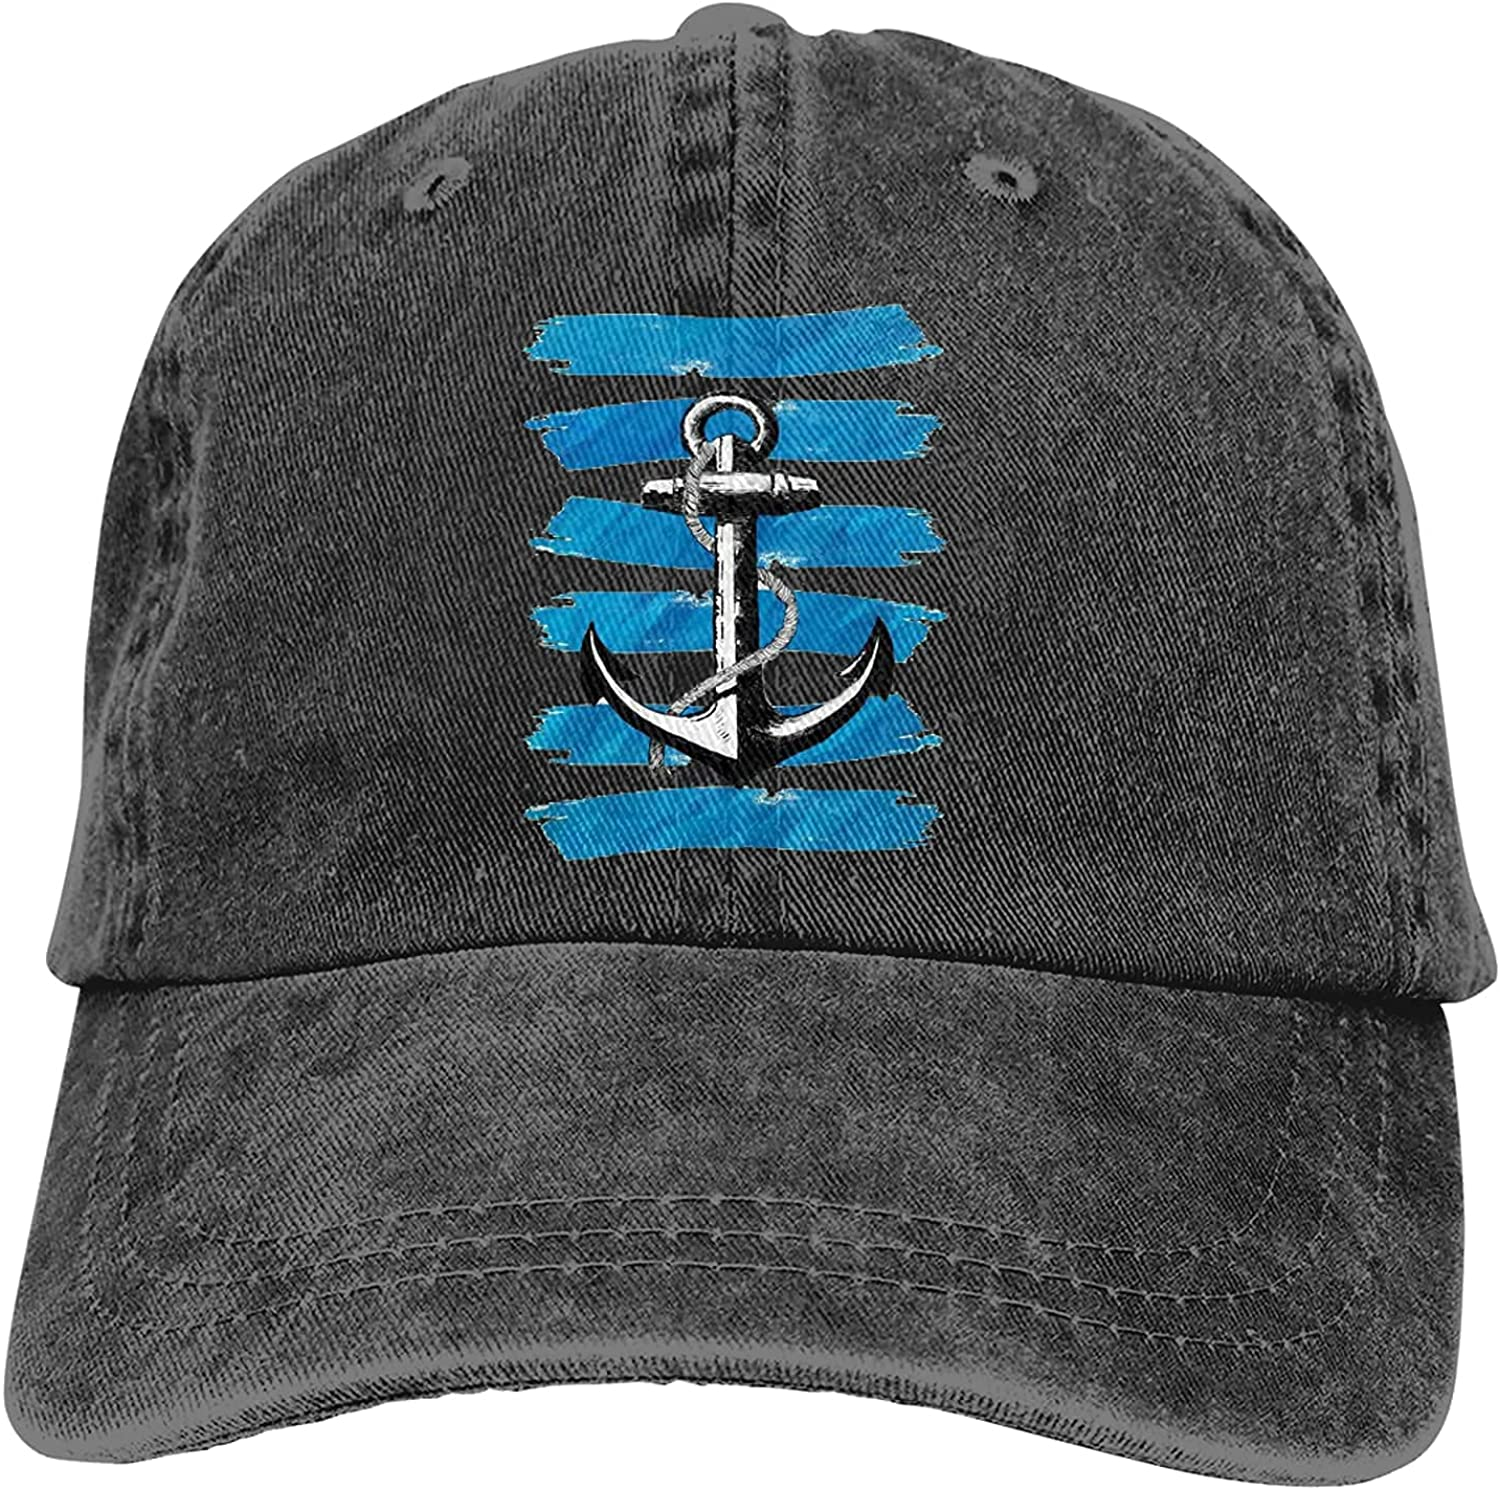 Max 51% OFF Nautical Stripes Anchor Sports Baseball Cap Washable Quality inspection Trucker Hat